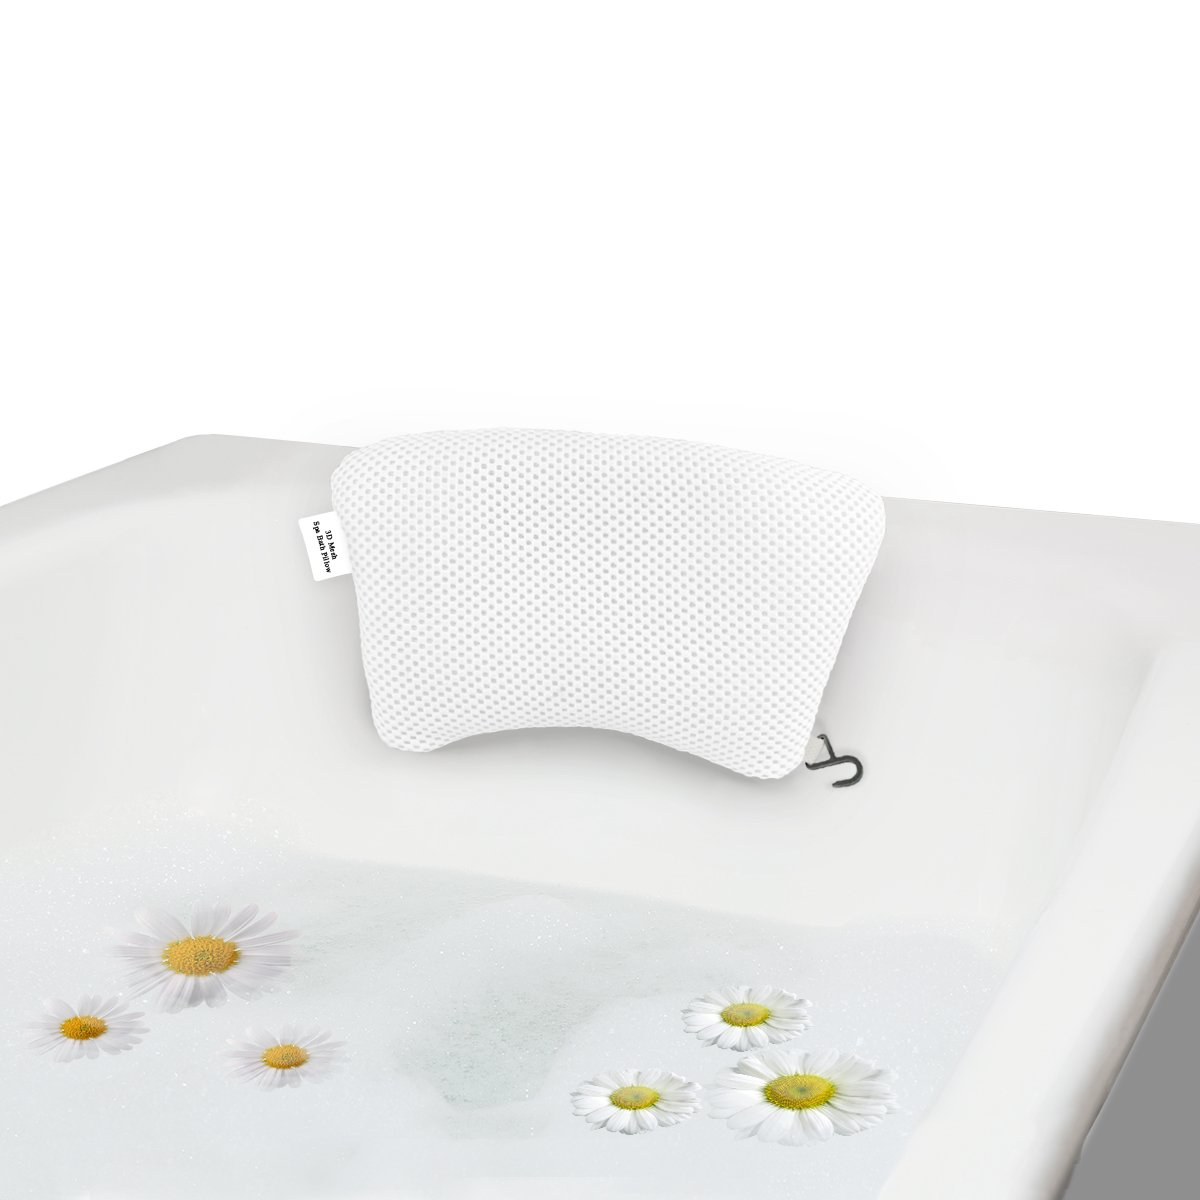 Feelkaus Luxury Bath Pillow New Version 3D Mesh, Sof Spa Neck Support with Non-Slip Gripping Suction Cups for Bathtub Mold Resist Pillow